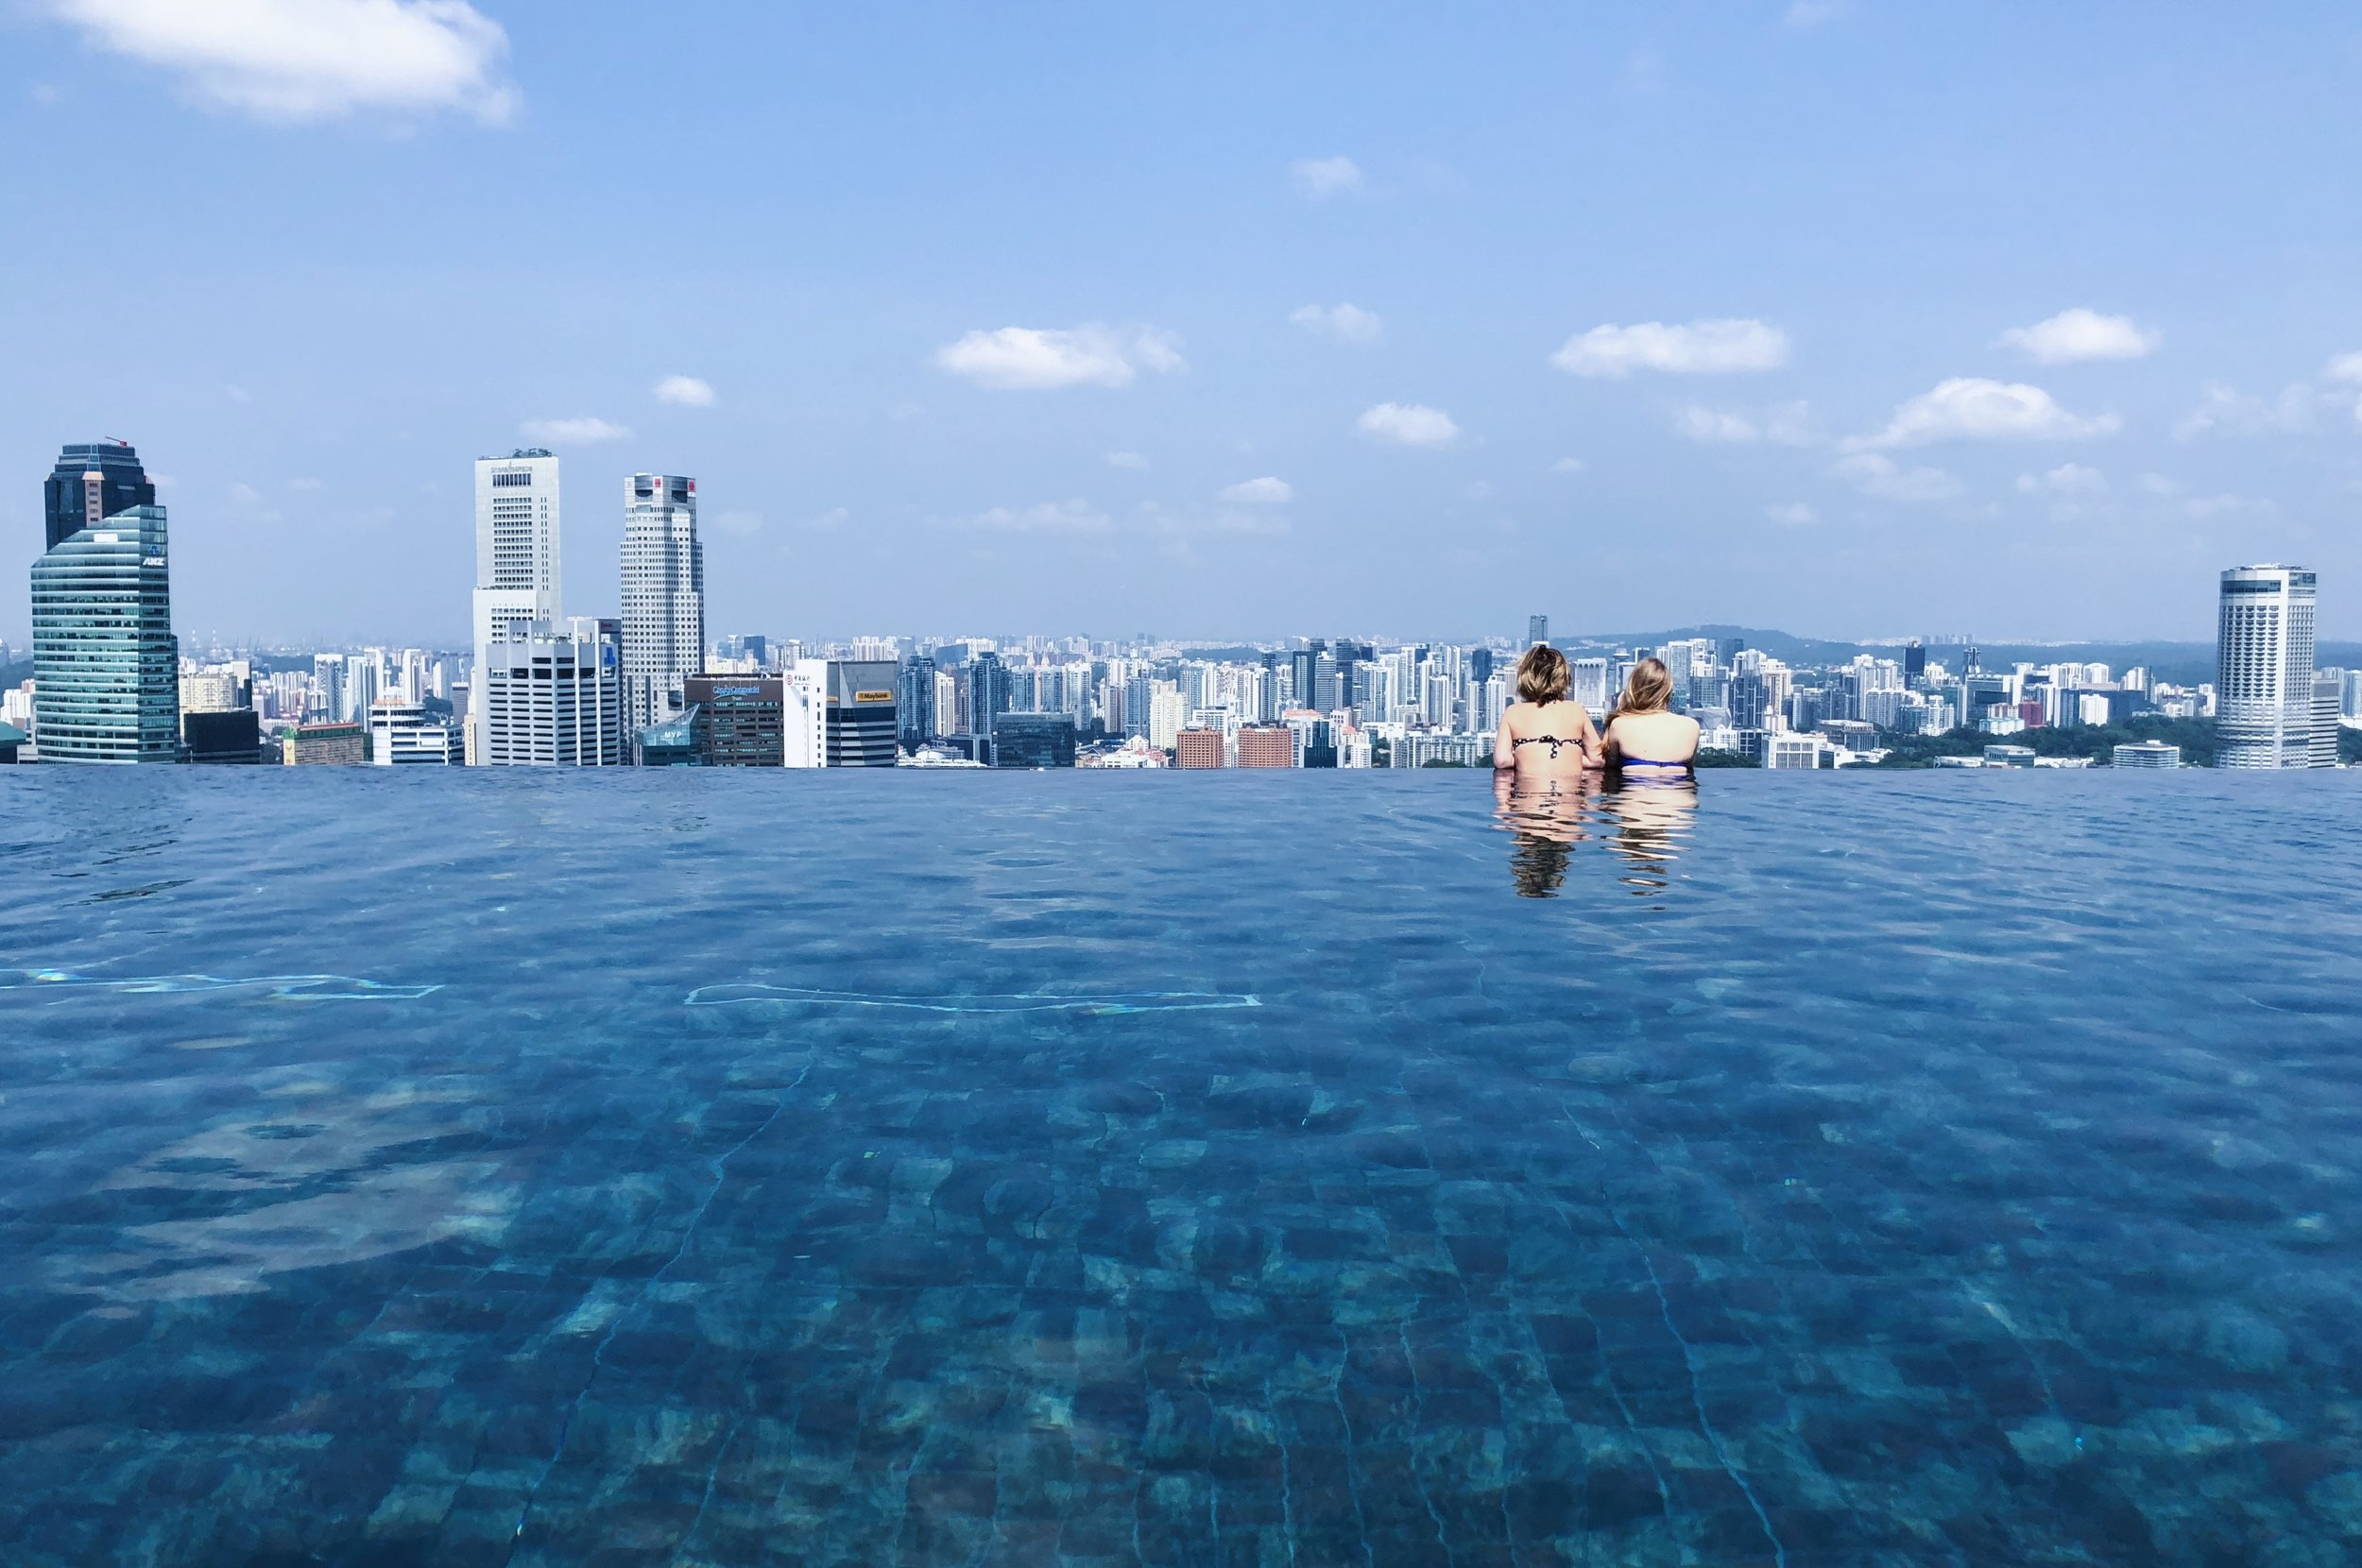 The swimming pool at Marina Bay Sands, Singapore.